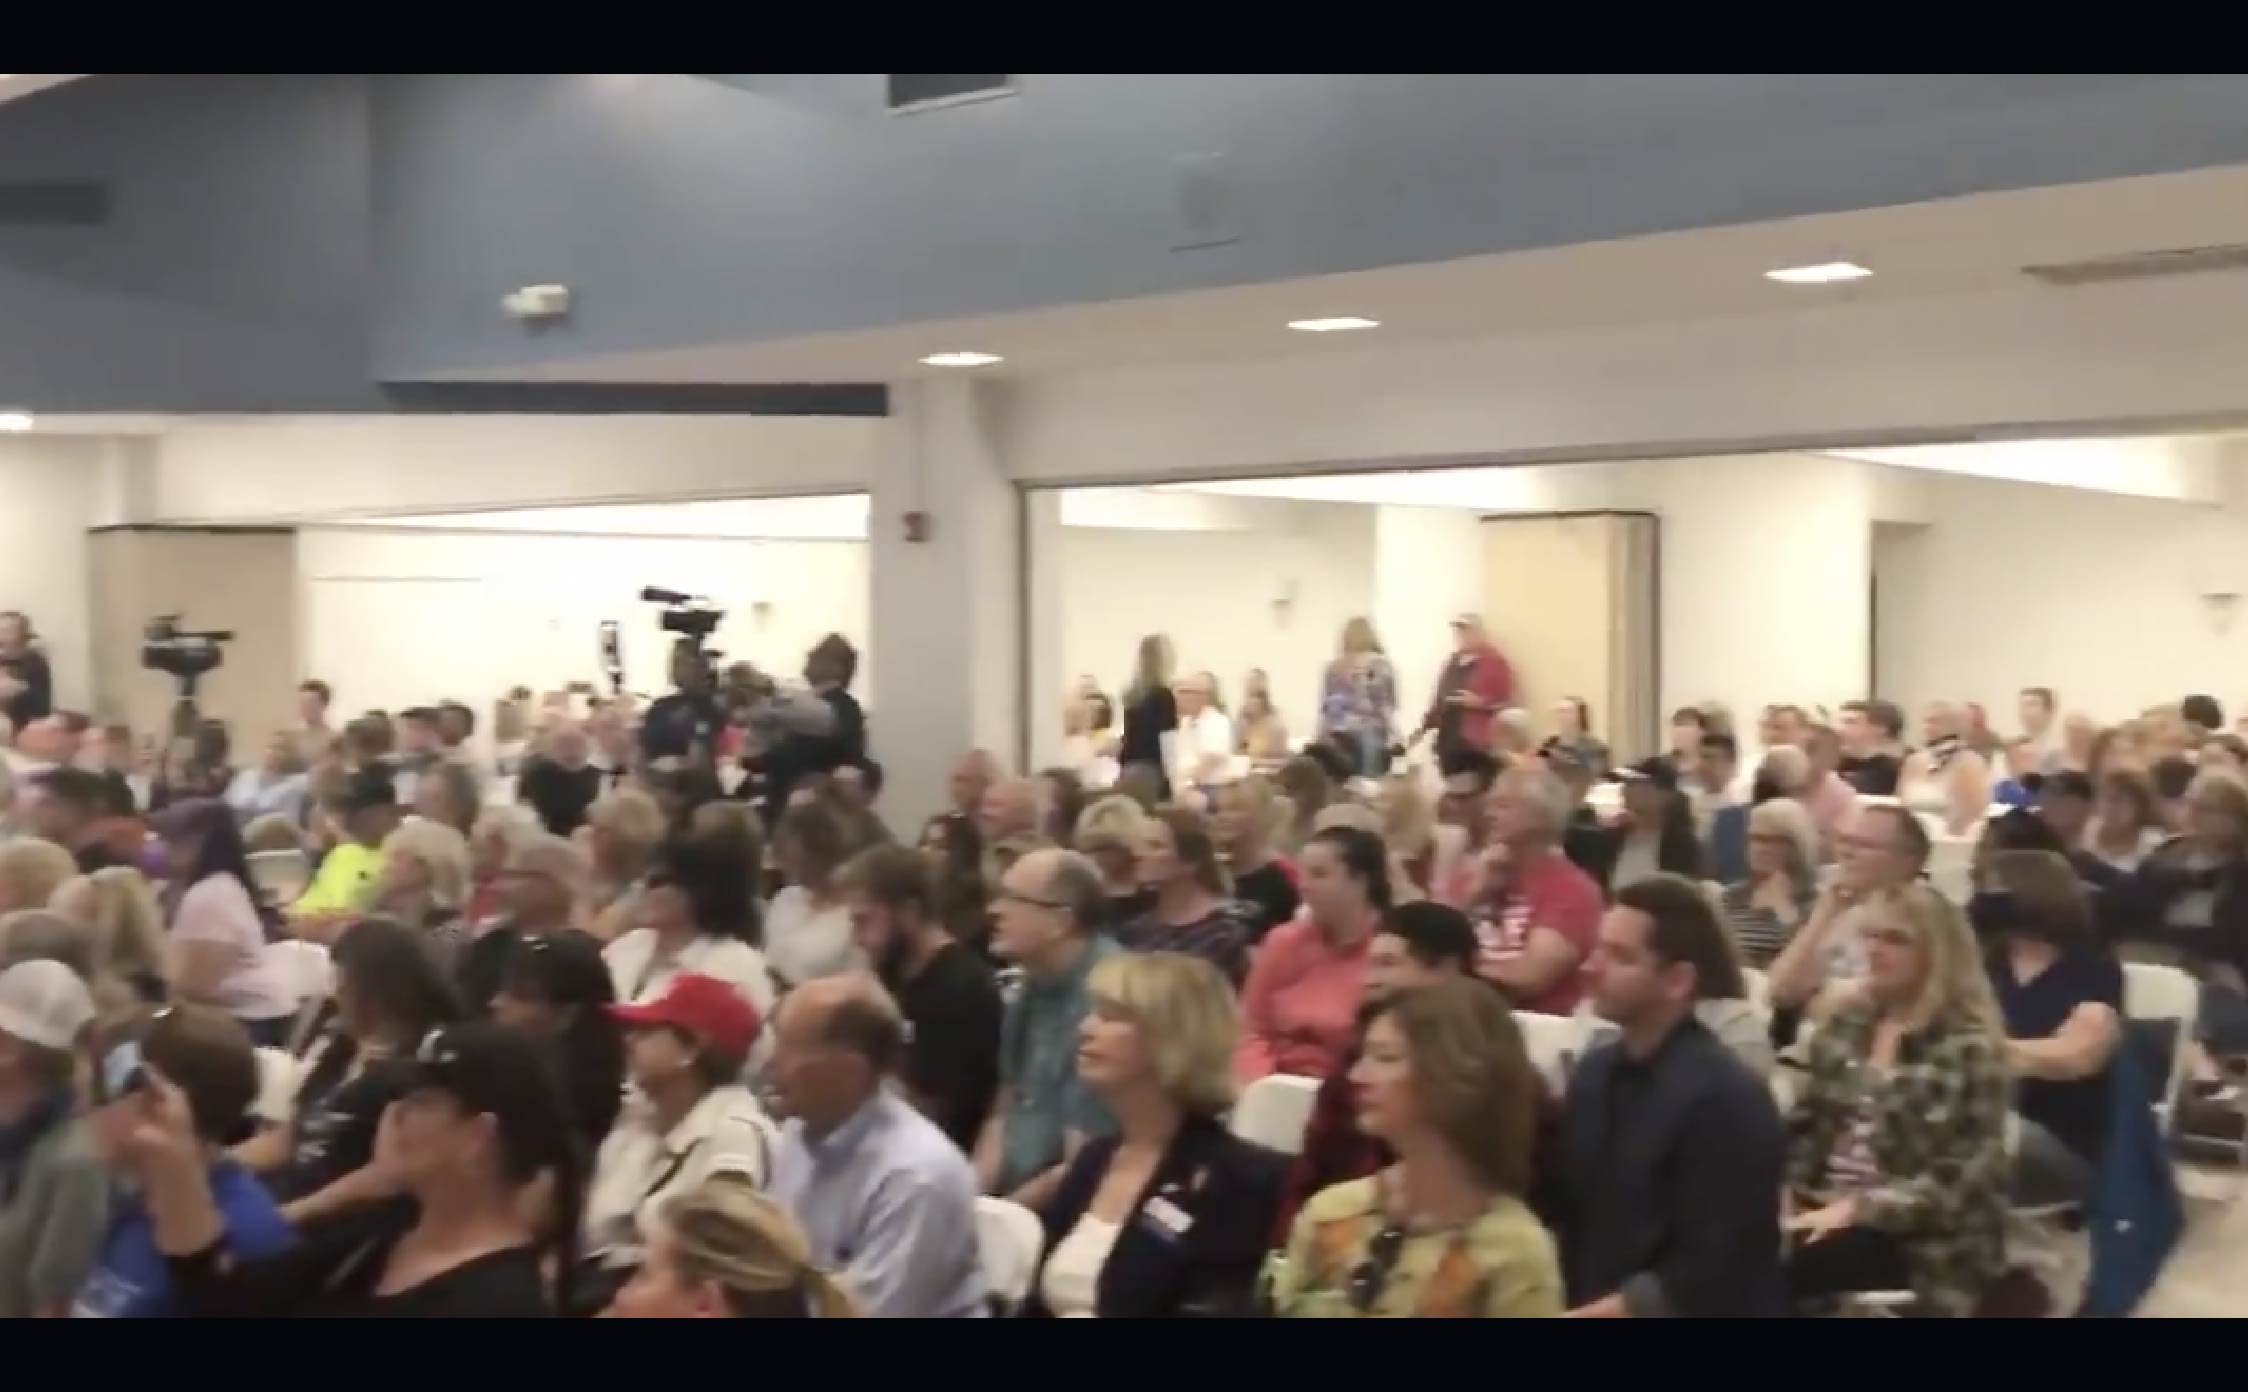 [VIDEO] Look at This Crowd of Patriots Who Gathered to Learn How to Change Bad Election Laws